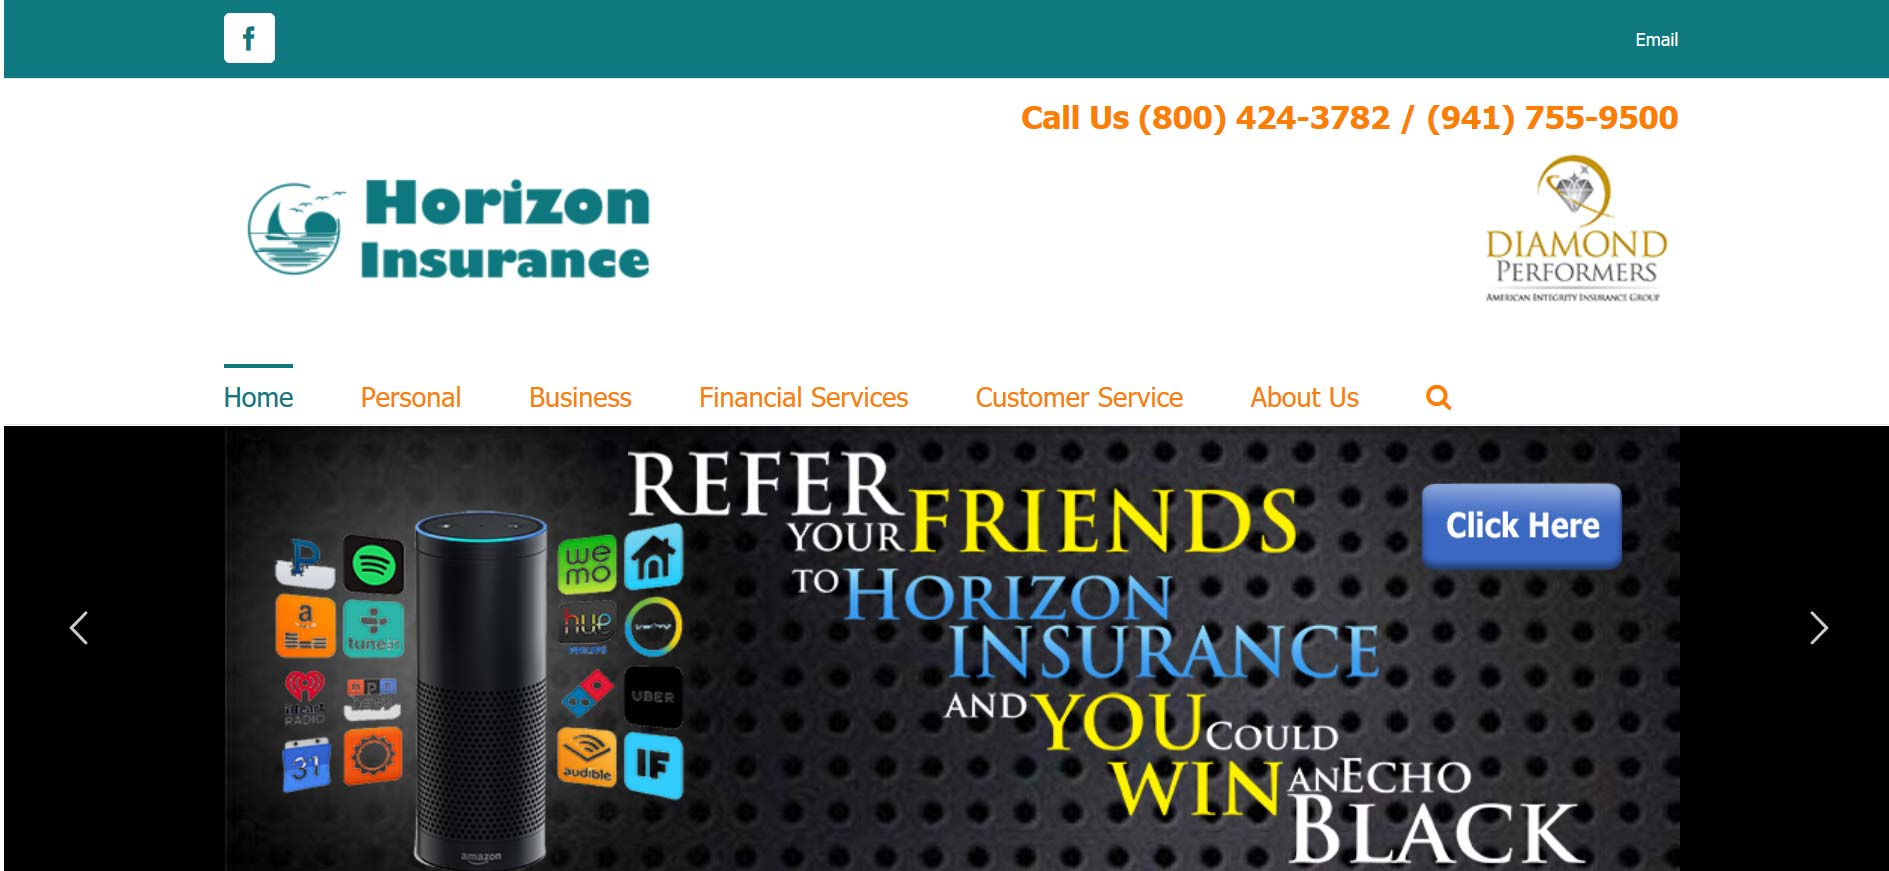 Horizon- Insurance agency websites with Automated marketing